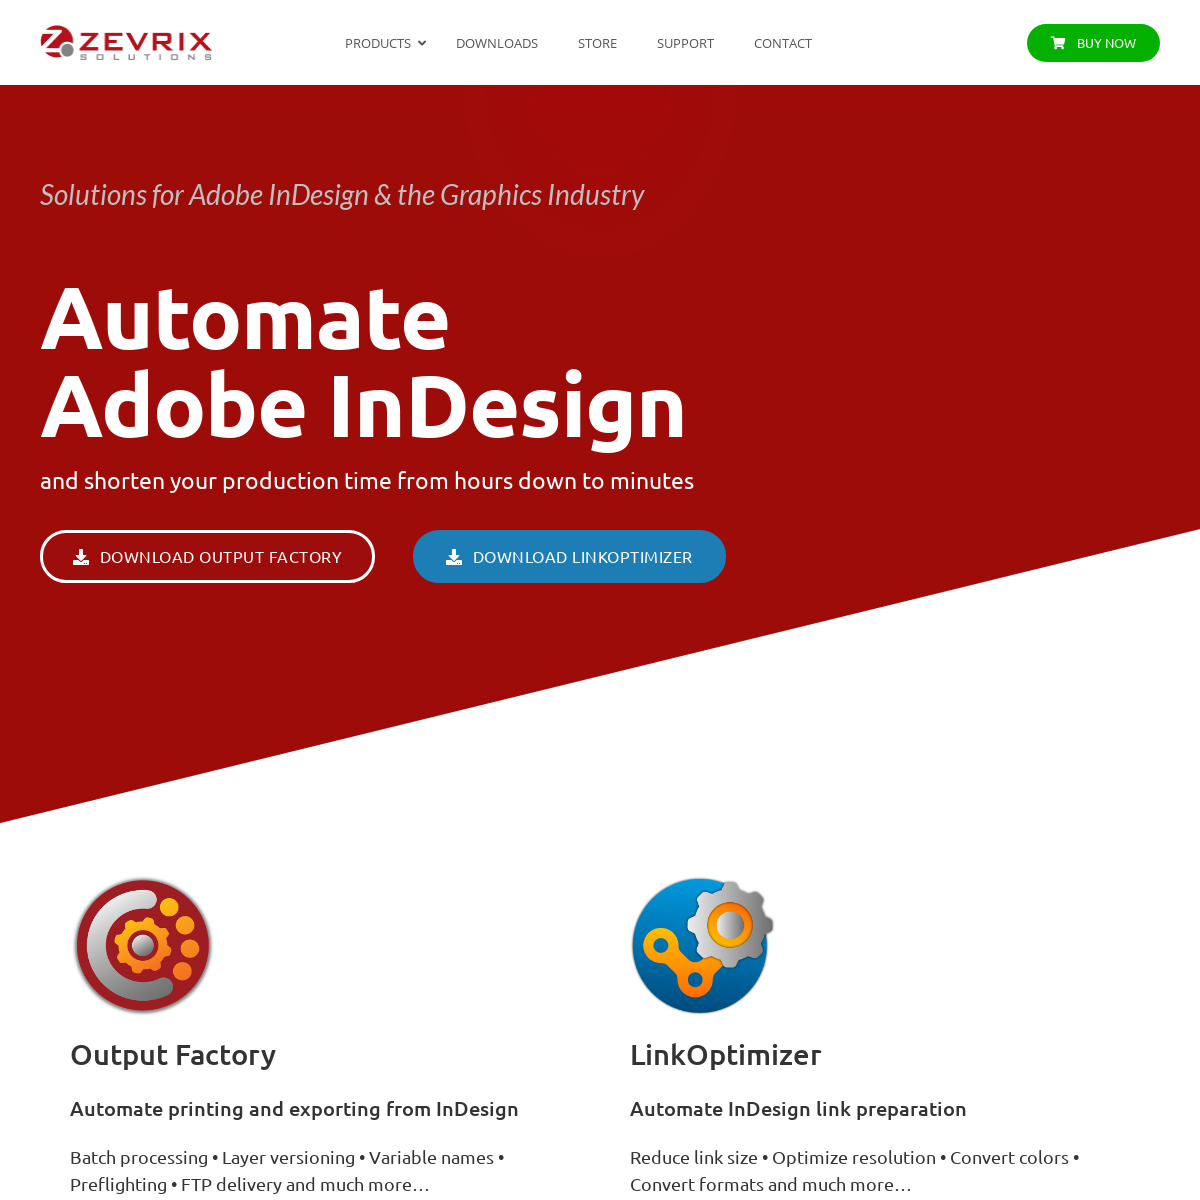 Zevrix Solutions – Solutions for Adobe InDesign & the Graphics Industry